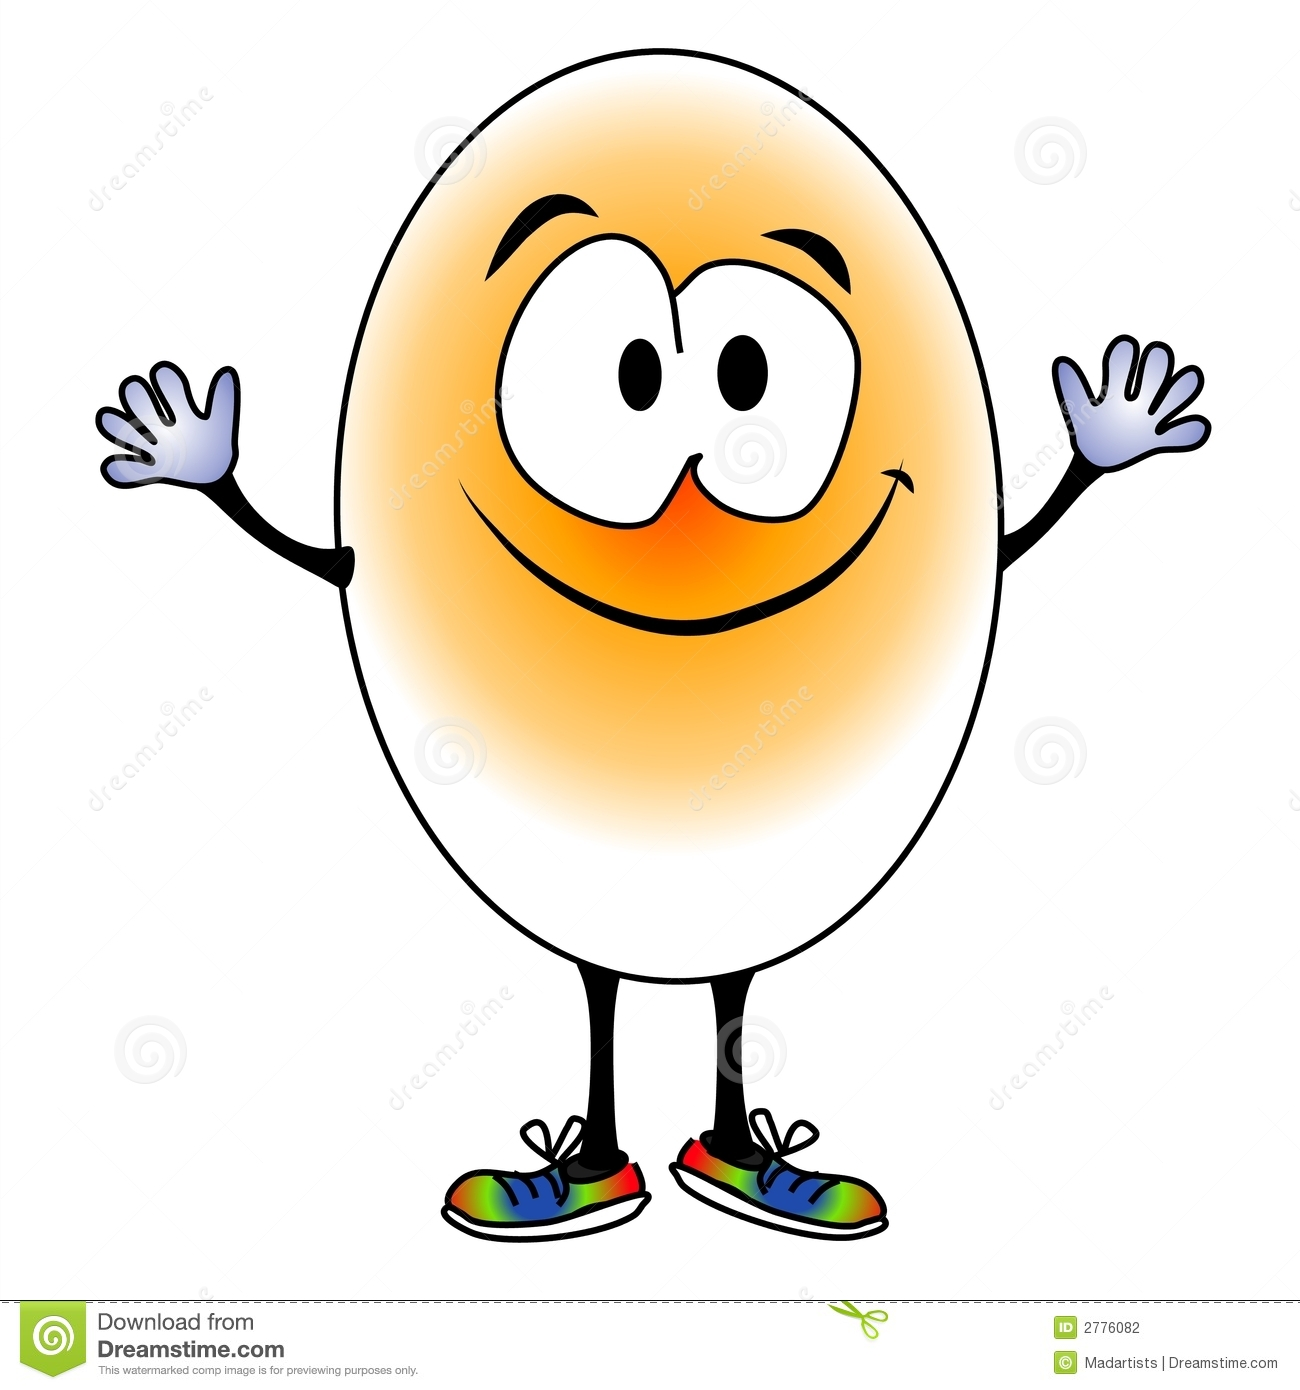 Most funny cartoon egg pictures and photos